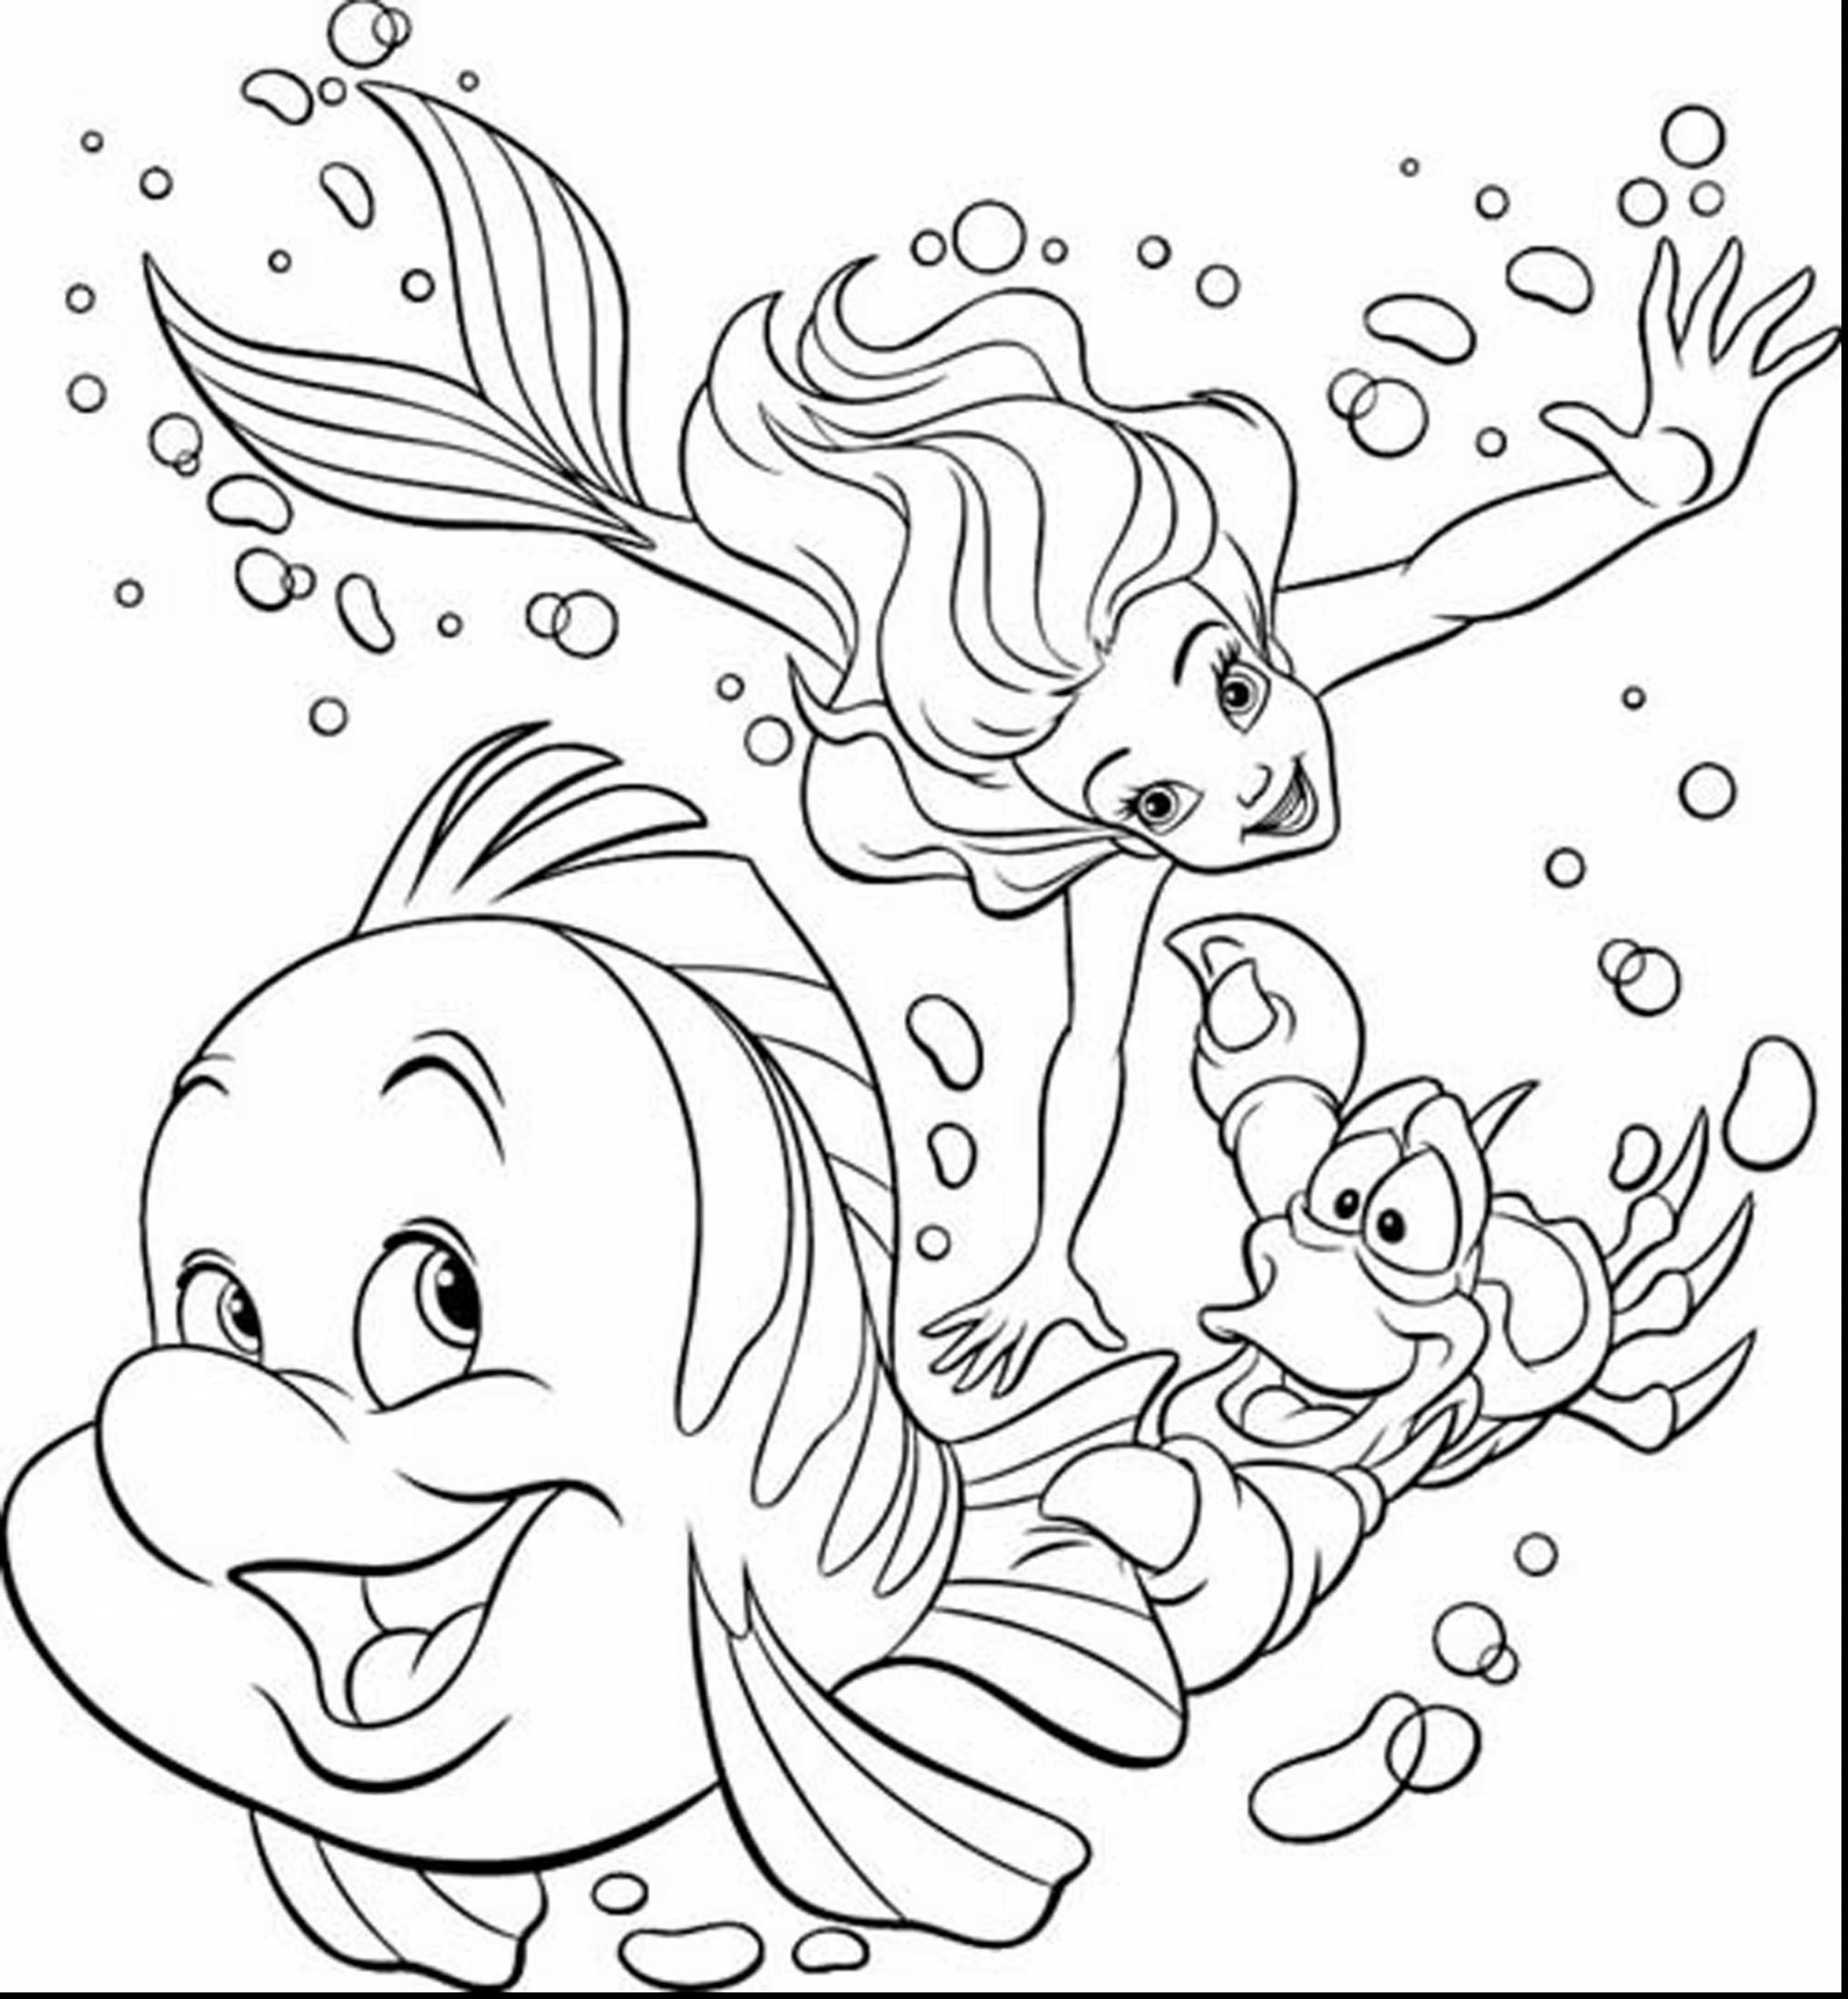 Coloring Pages For Ariel - Coloring Home | 3034x2805